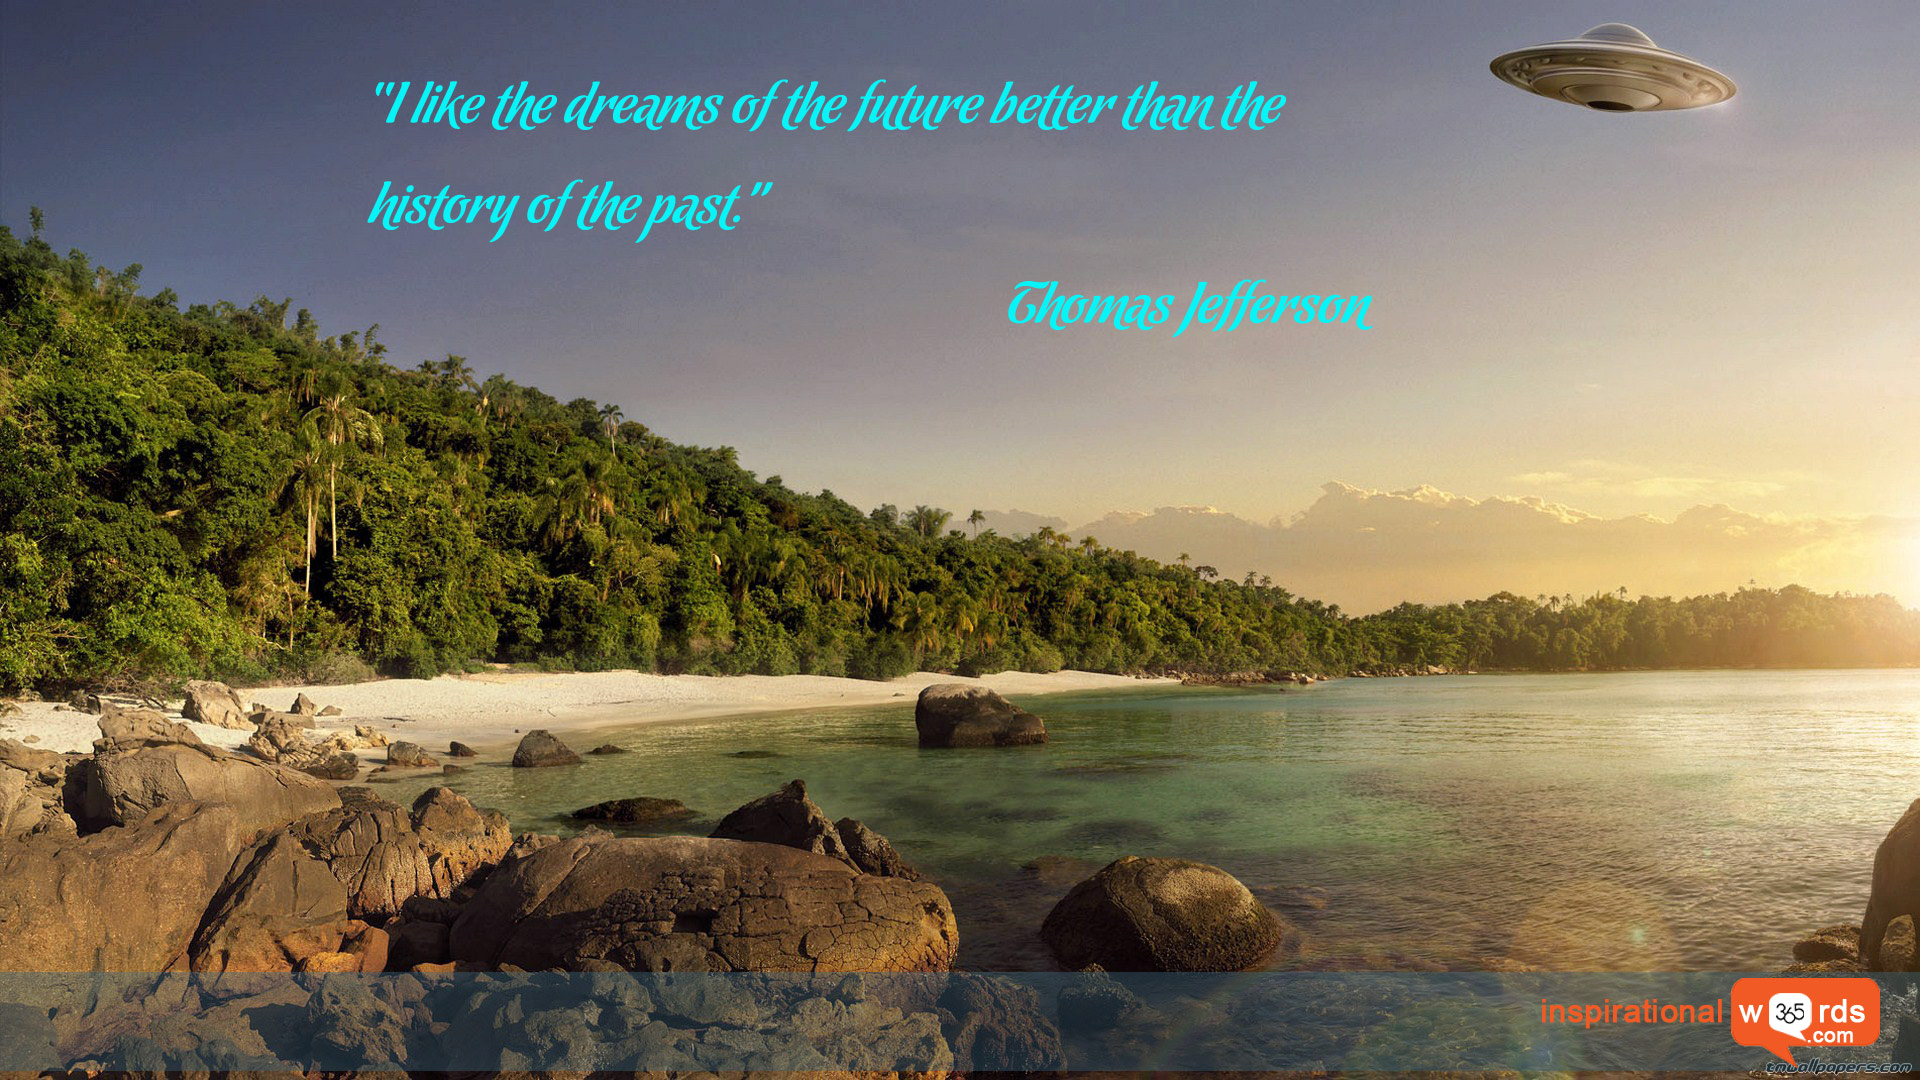 Inspirational Wallpaper Quote by Thomas Jefferson